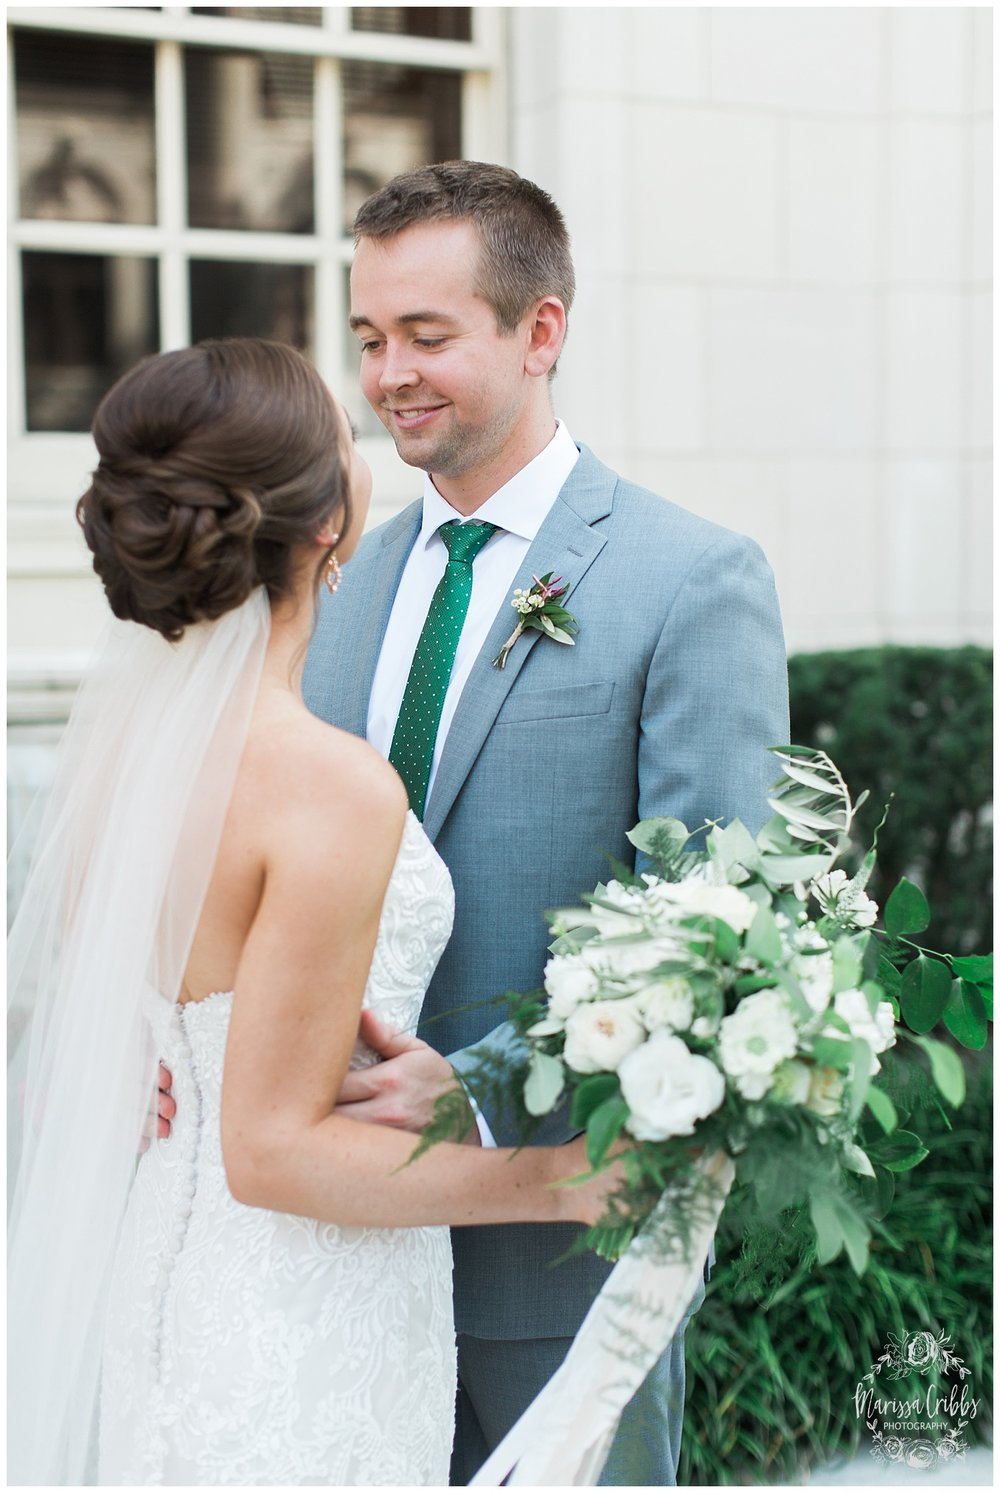 FEASTS OF FANCY KC WEDDING | THE HOBBS WEDDING KANSAS CITY | MARISSA CRIBBS PHOTOGRAPHY_2182.jpg